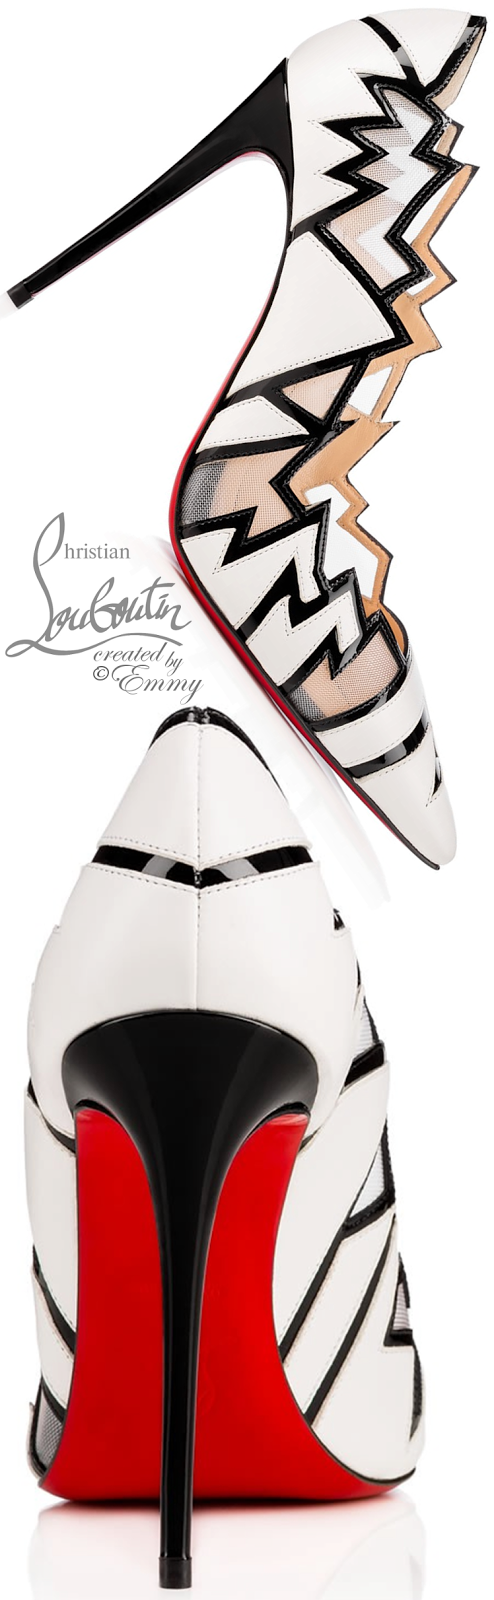 Brilliant Luxury ♦ Christian Louboutin Explorete Pumps